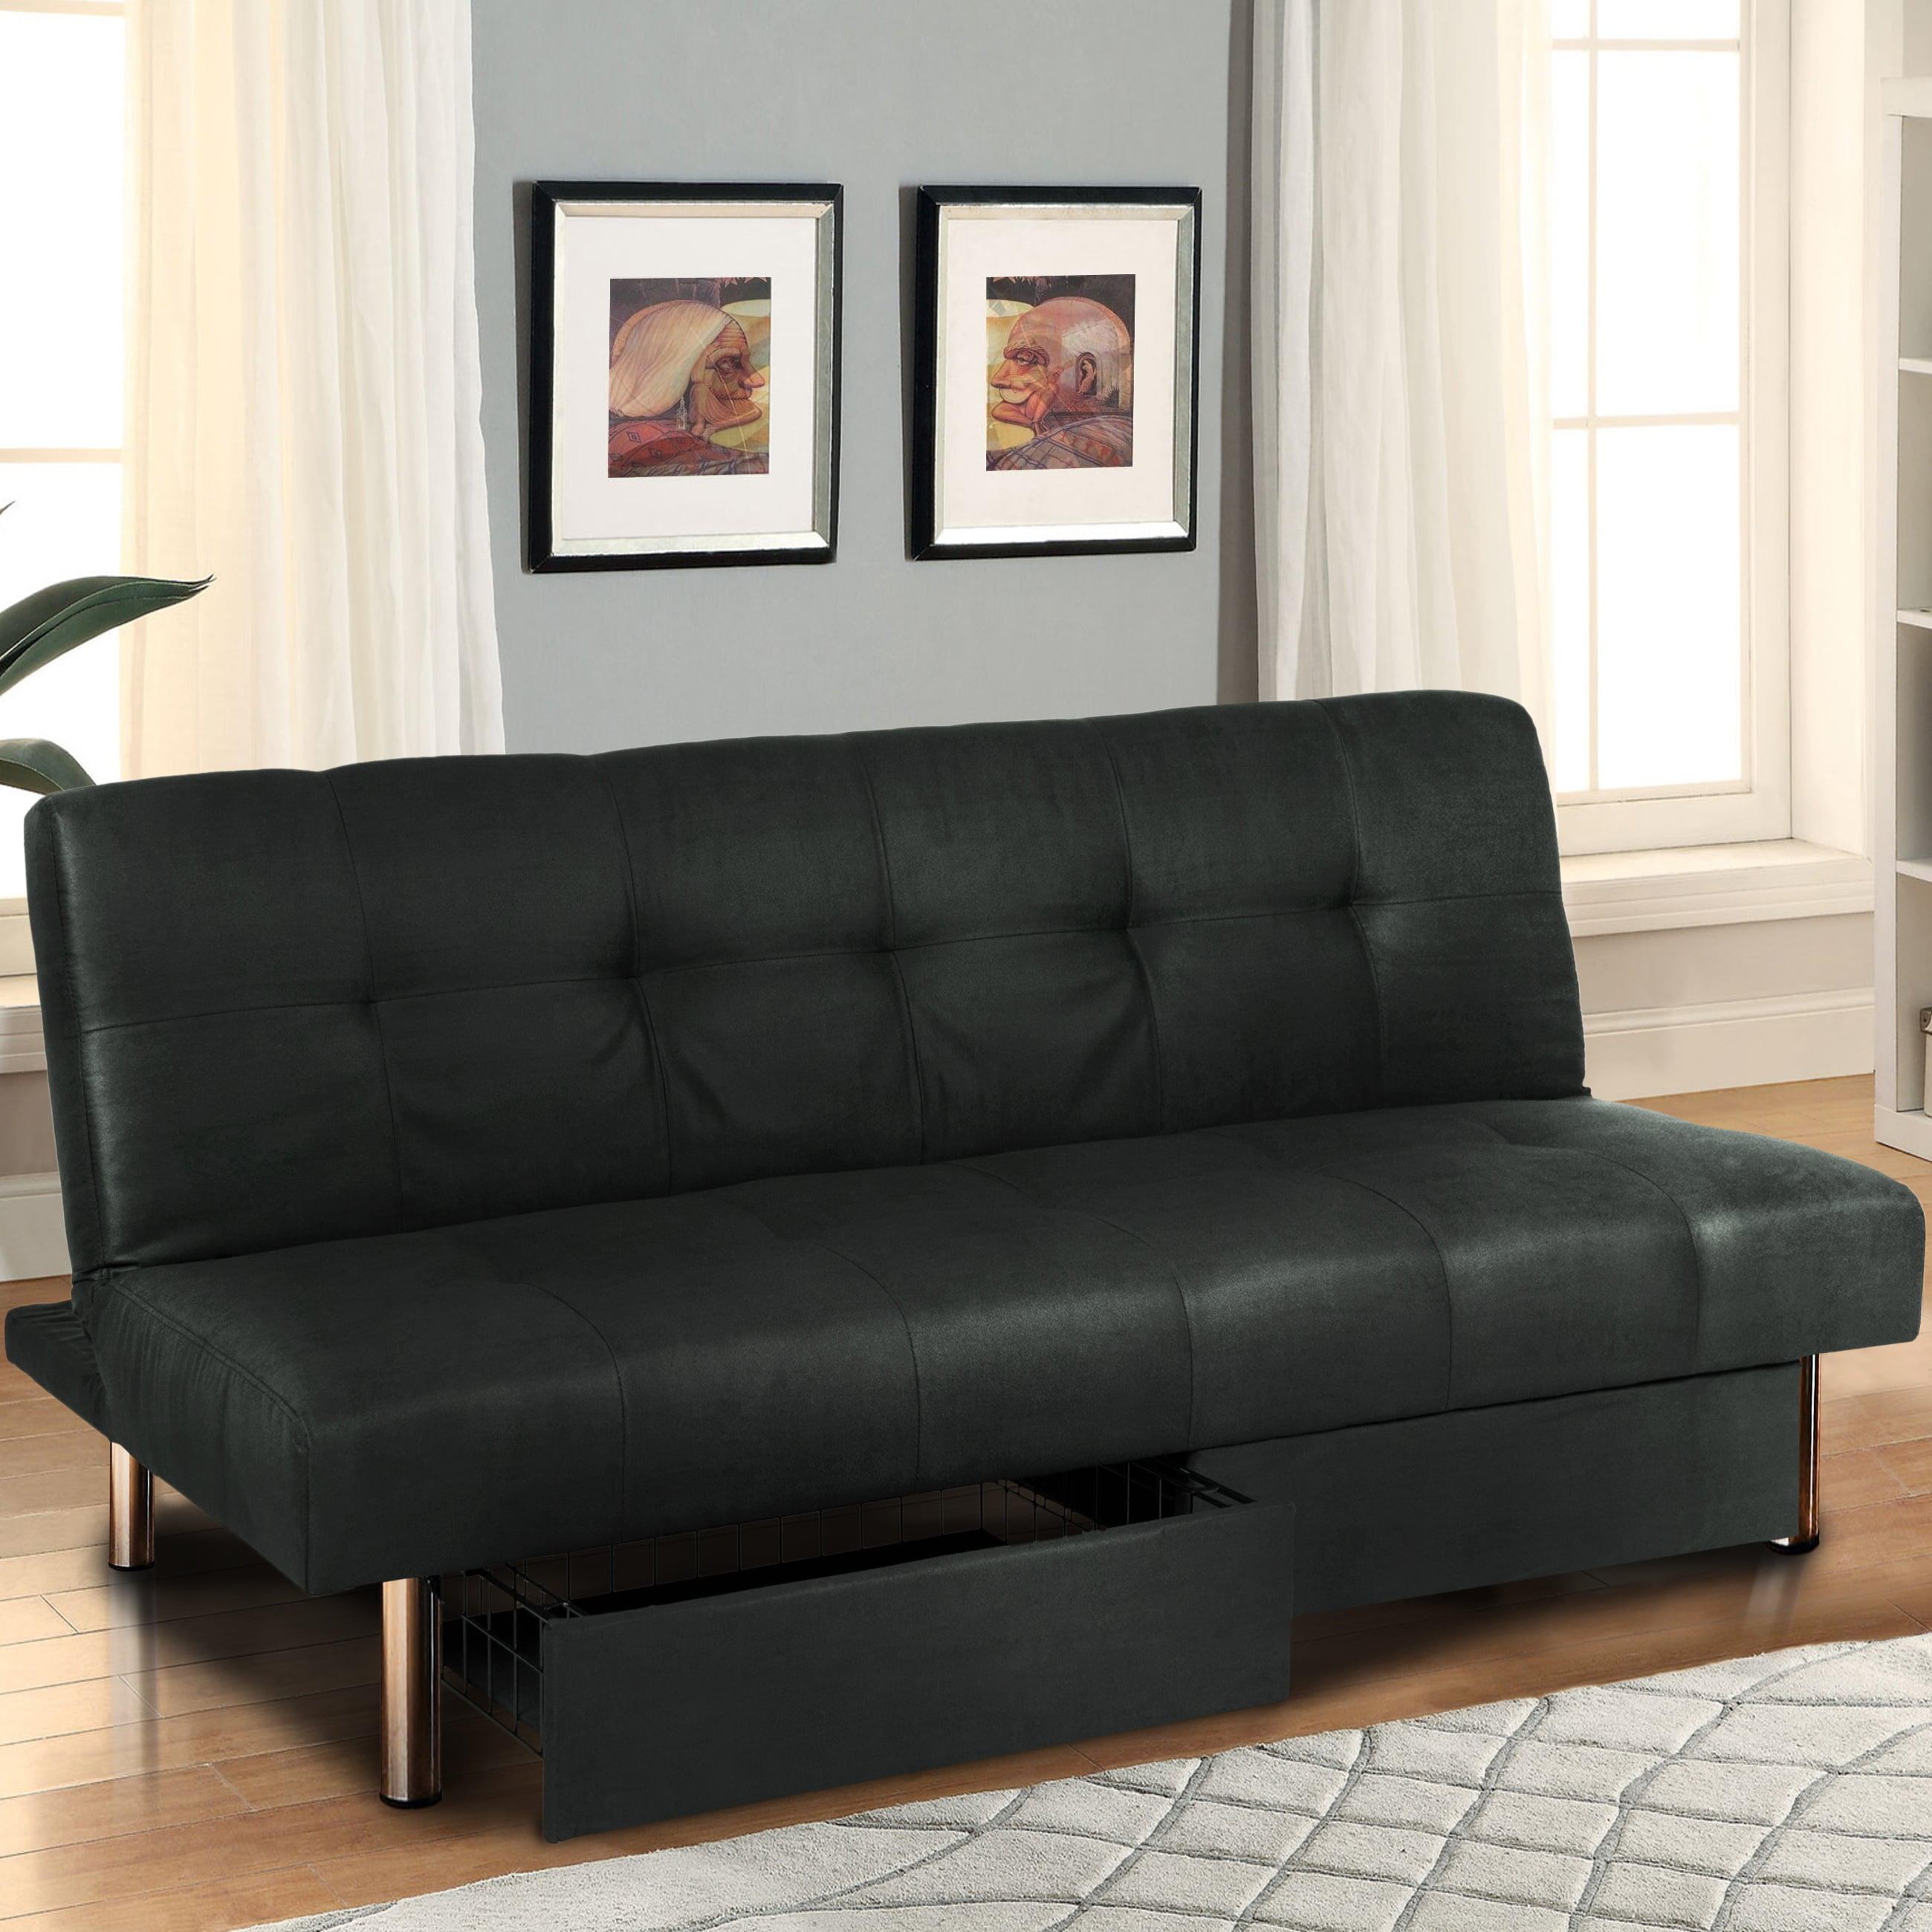 contemporary leather sofa sleeper. best choice products modern entertainment futon sofa bed fold up \u0026 down recliner couch with cup holders furniture - walmart.com contemporary leather sleeper g